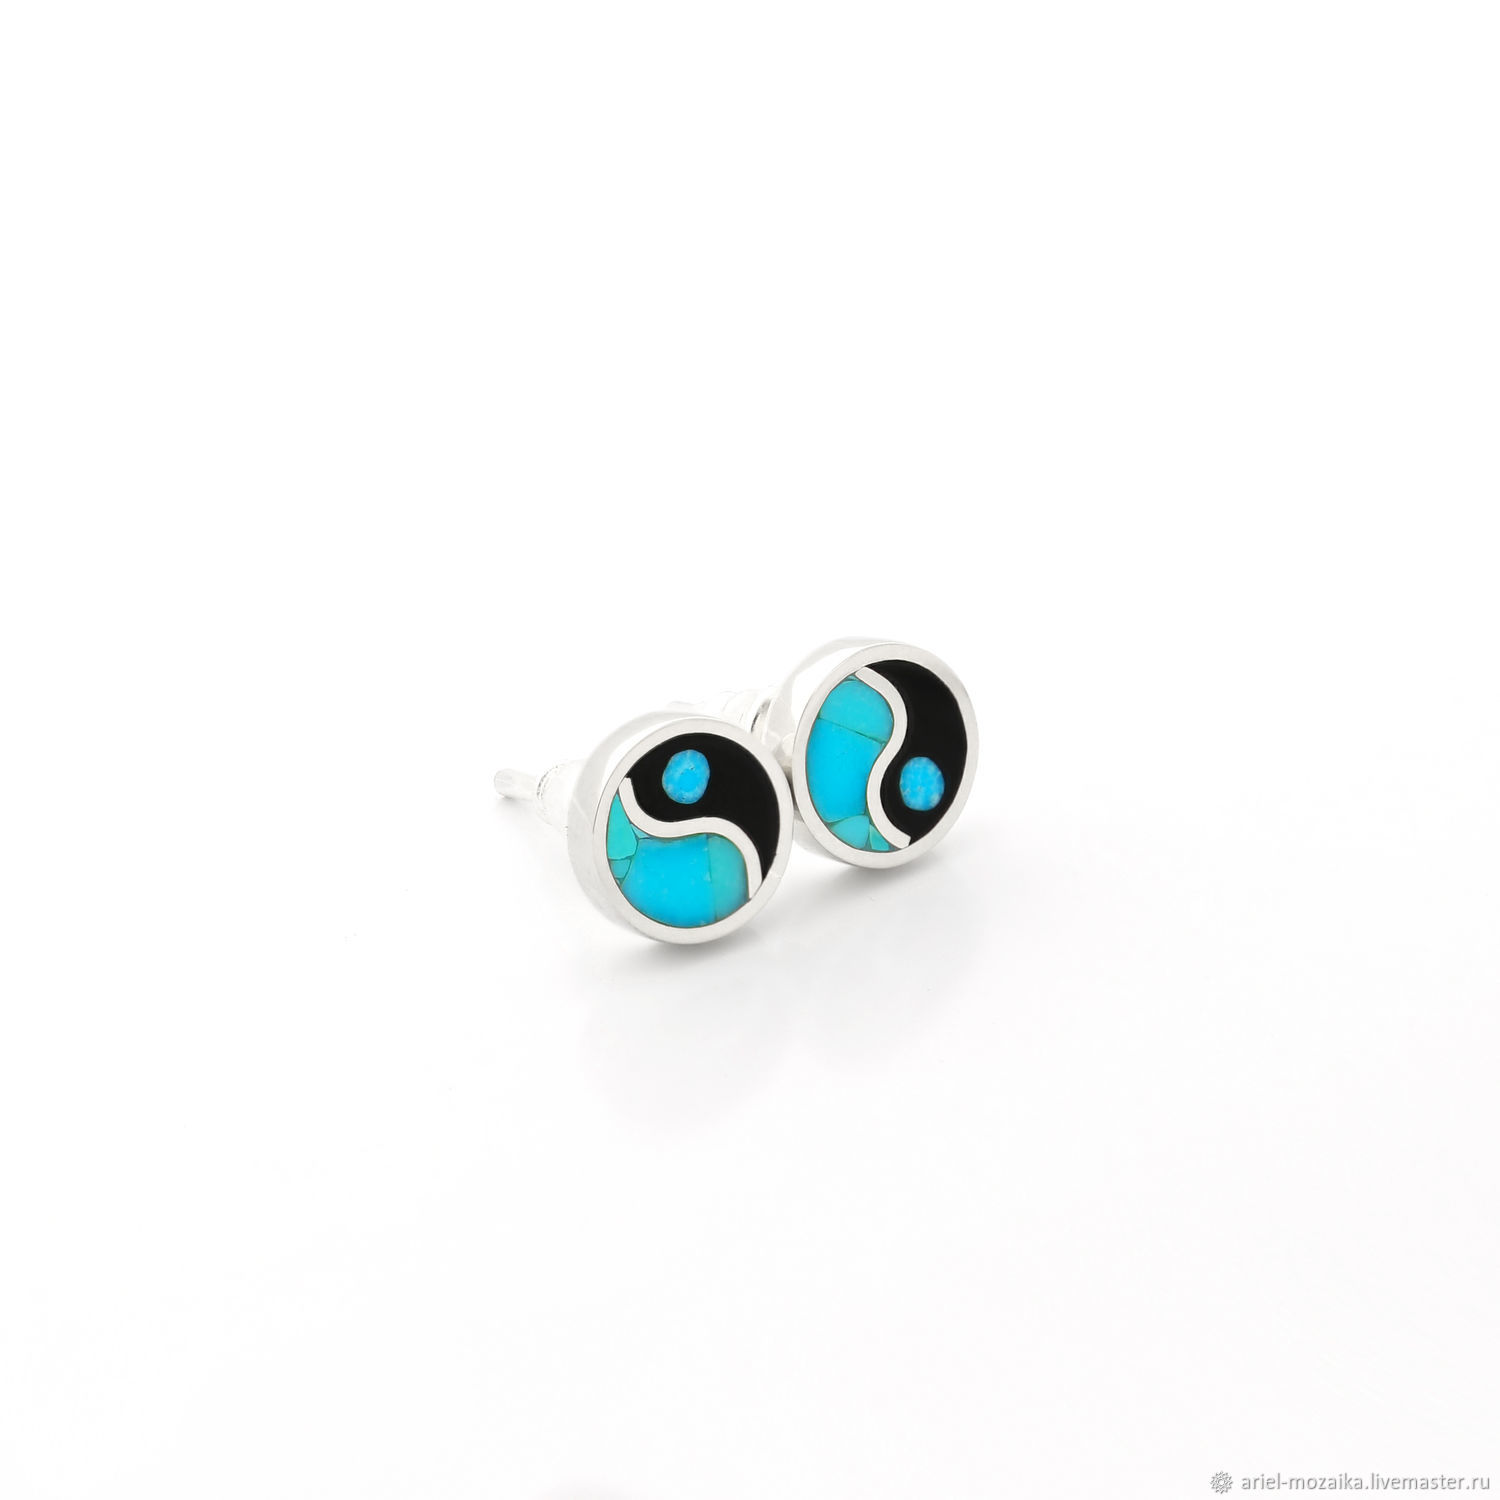 Yin-Yang EARRINGS with Turquoise. Small handmade stud earrings, Stud earrings, Moscow,  Фото №1